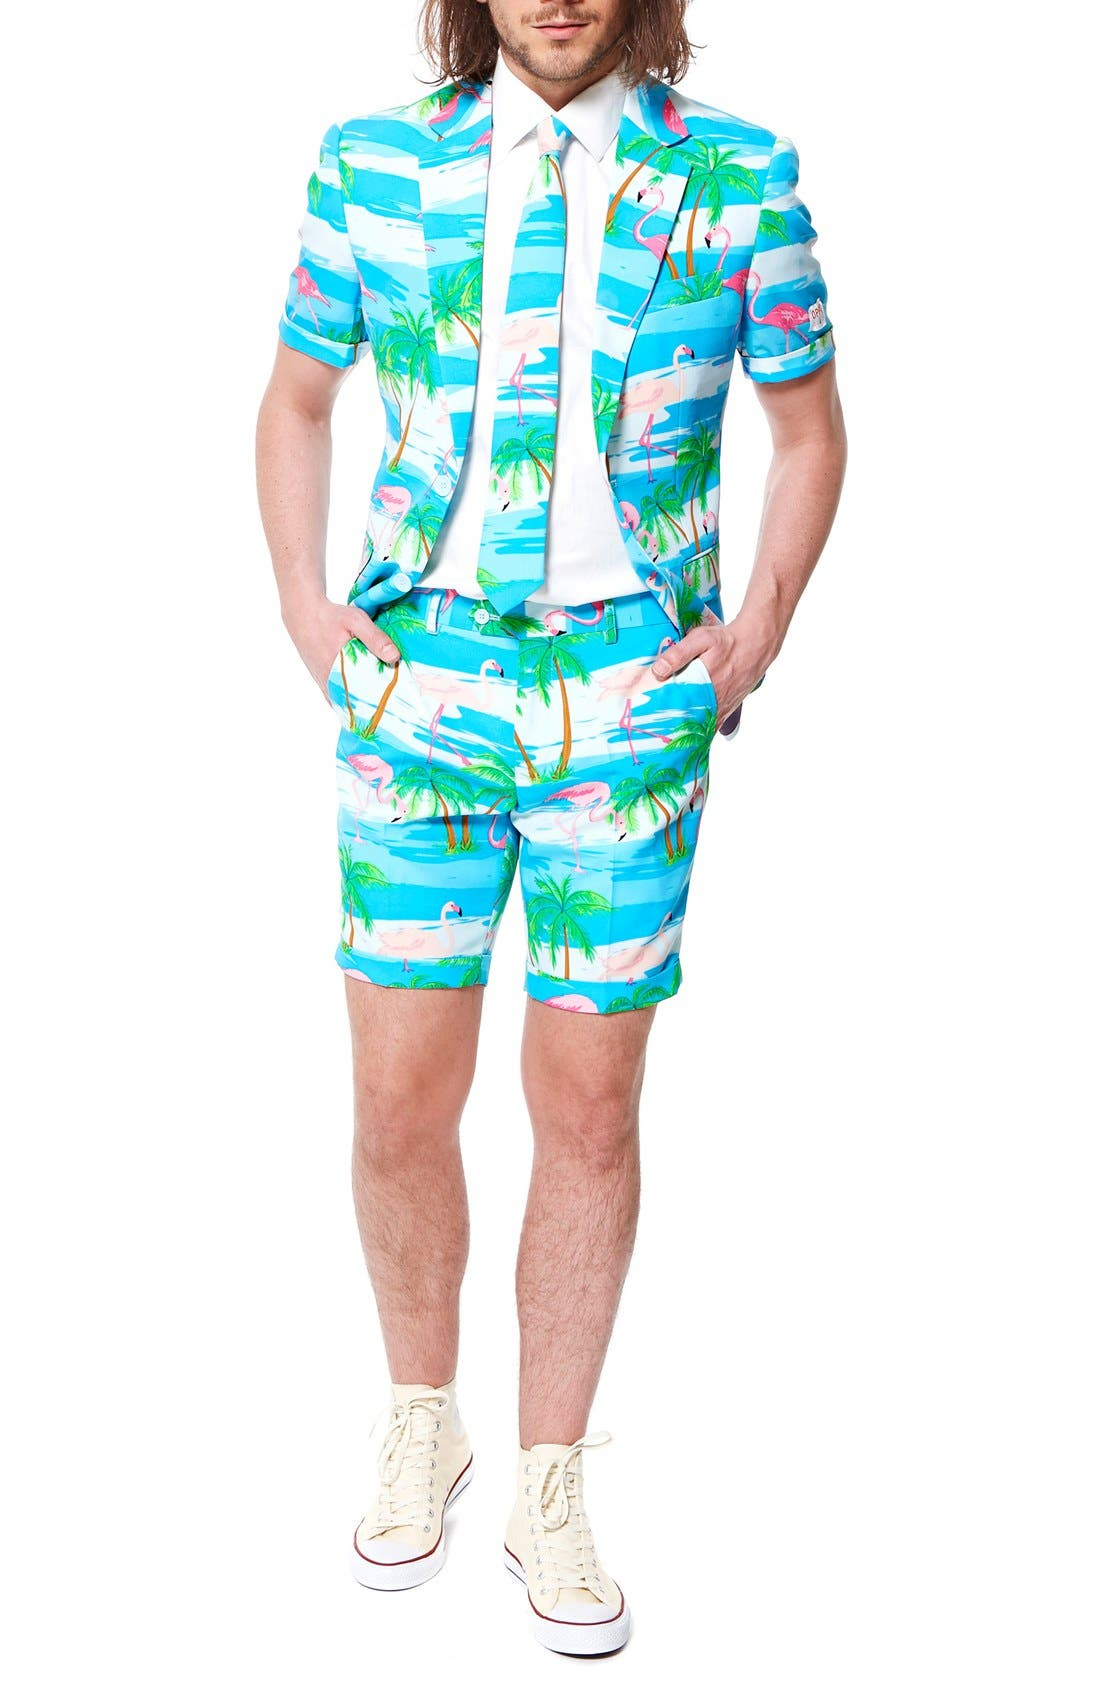 OppoSuits 'Flaminguy - Summer' Trim Fit Two-Piece Short Suit with Tie